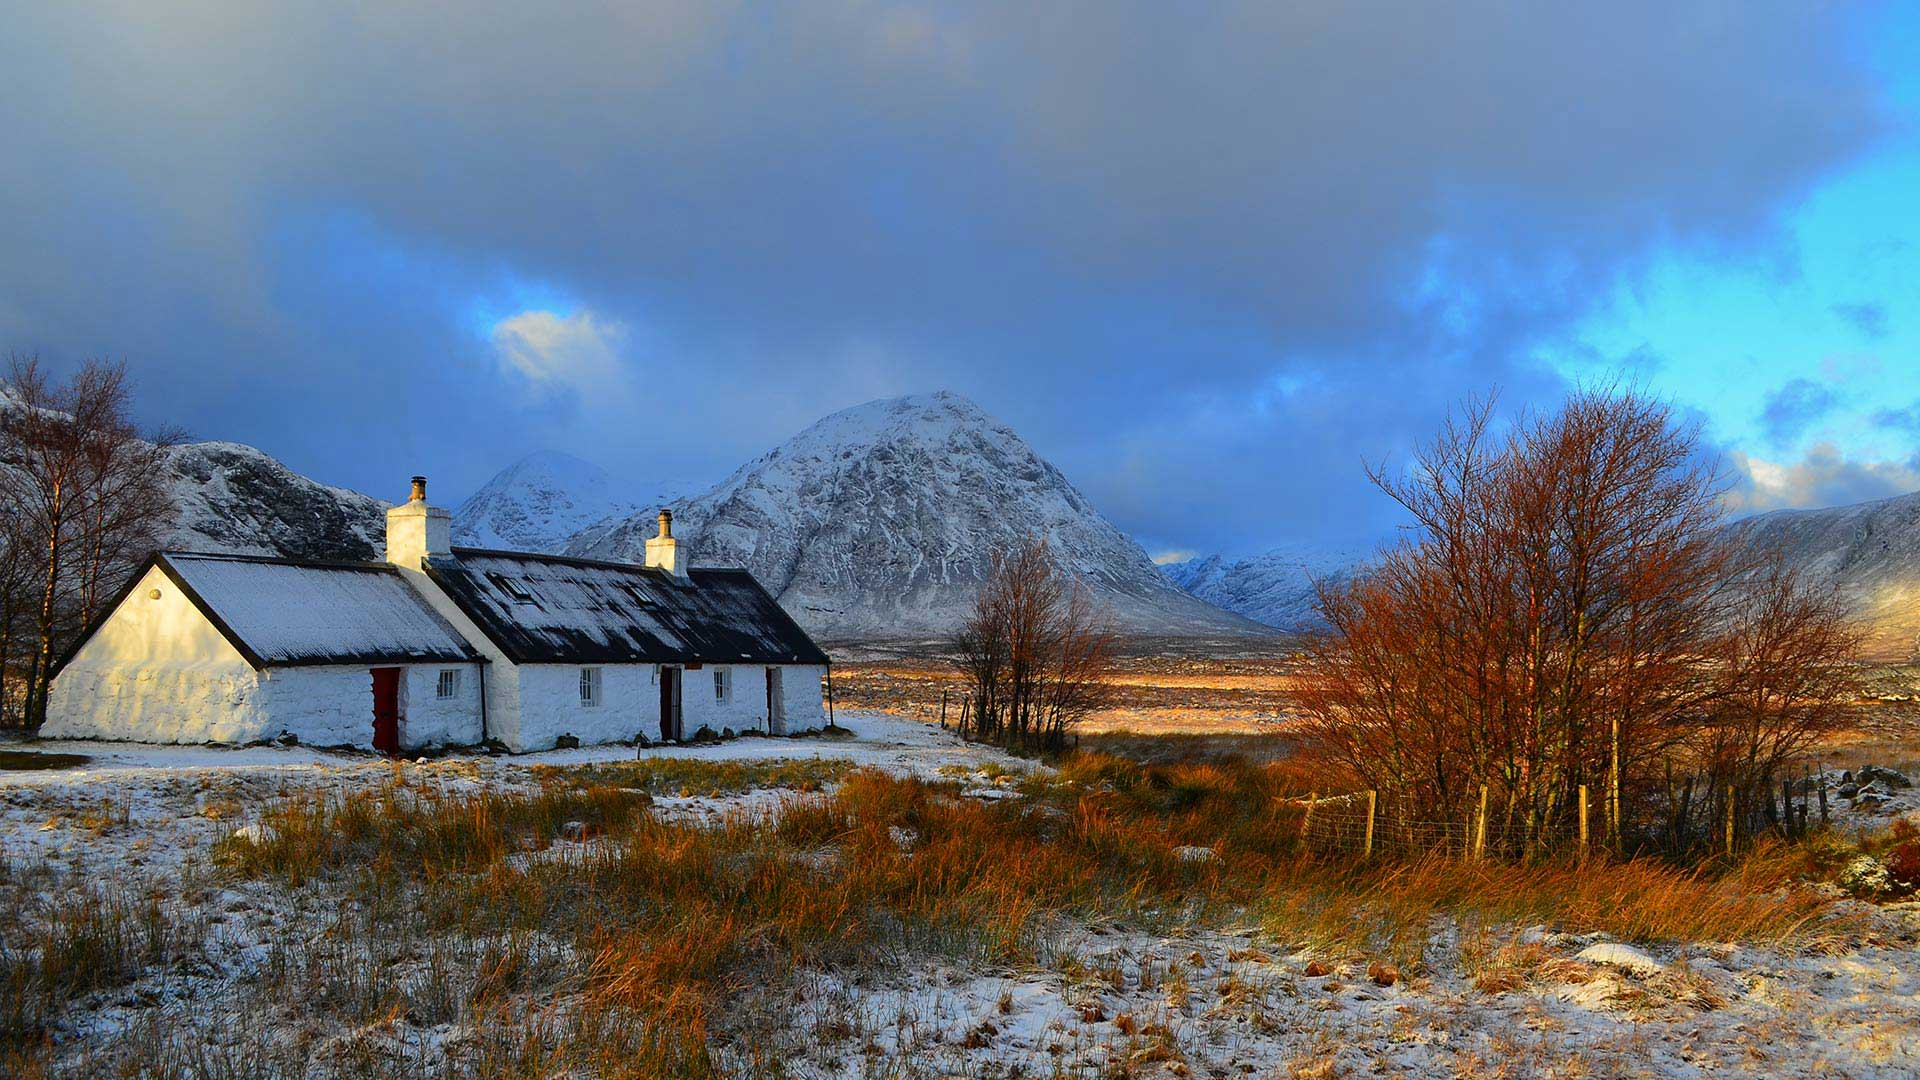 Scotland Winter World - 8 Days 7 Nights - Nordic Visitor